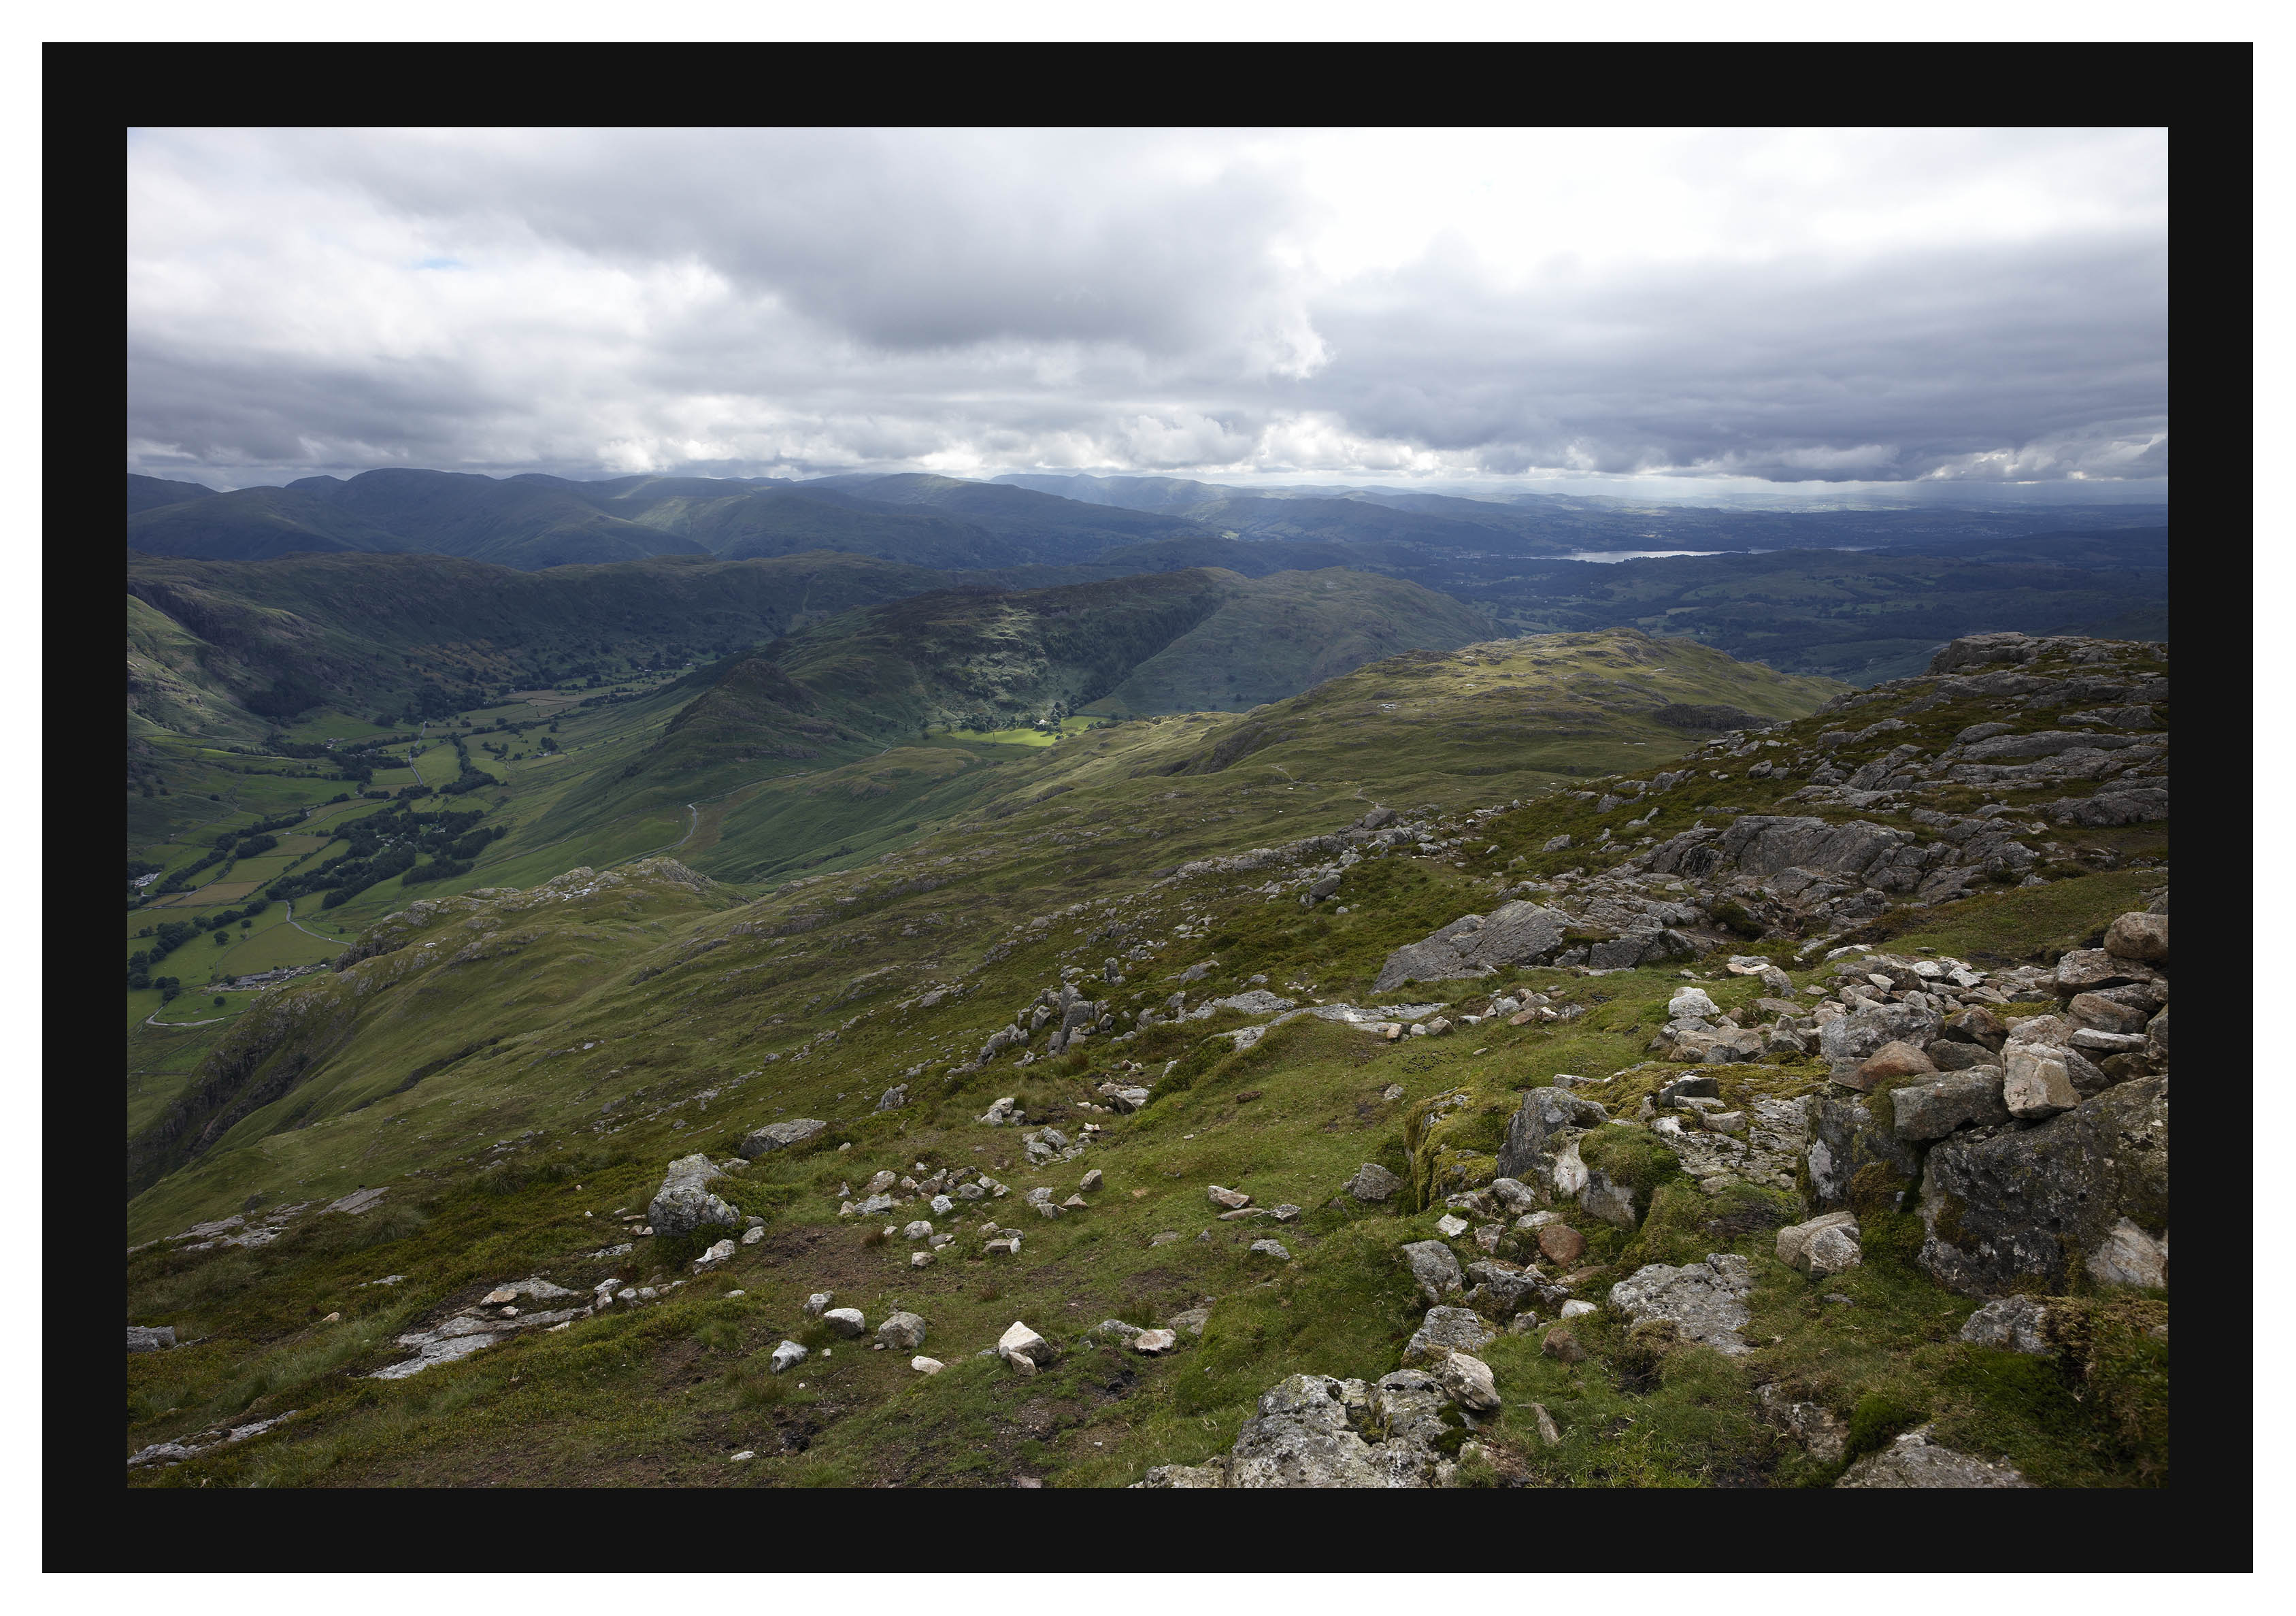 46E3998 Greater Langdale and Windermere from Pike of Blisco